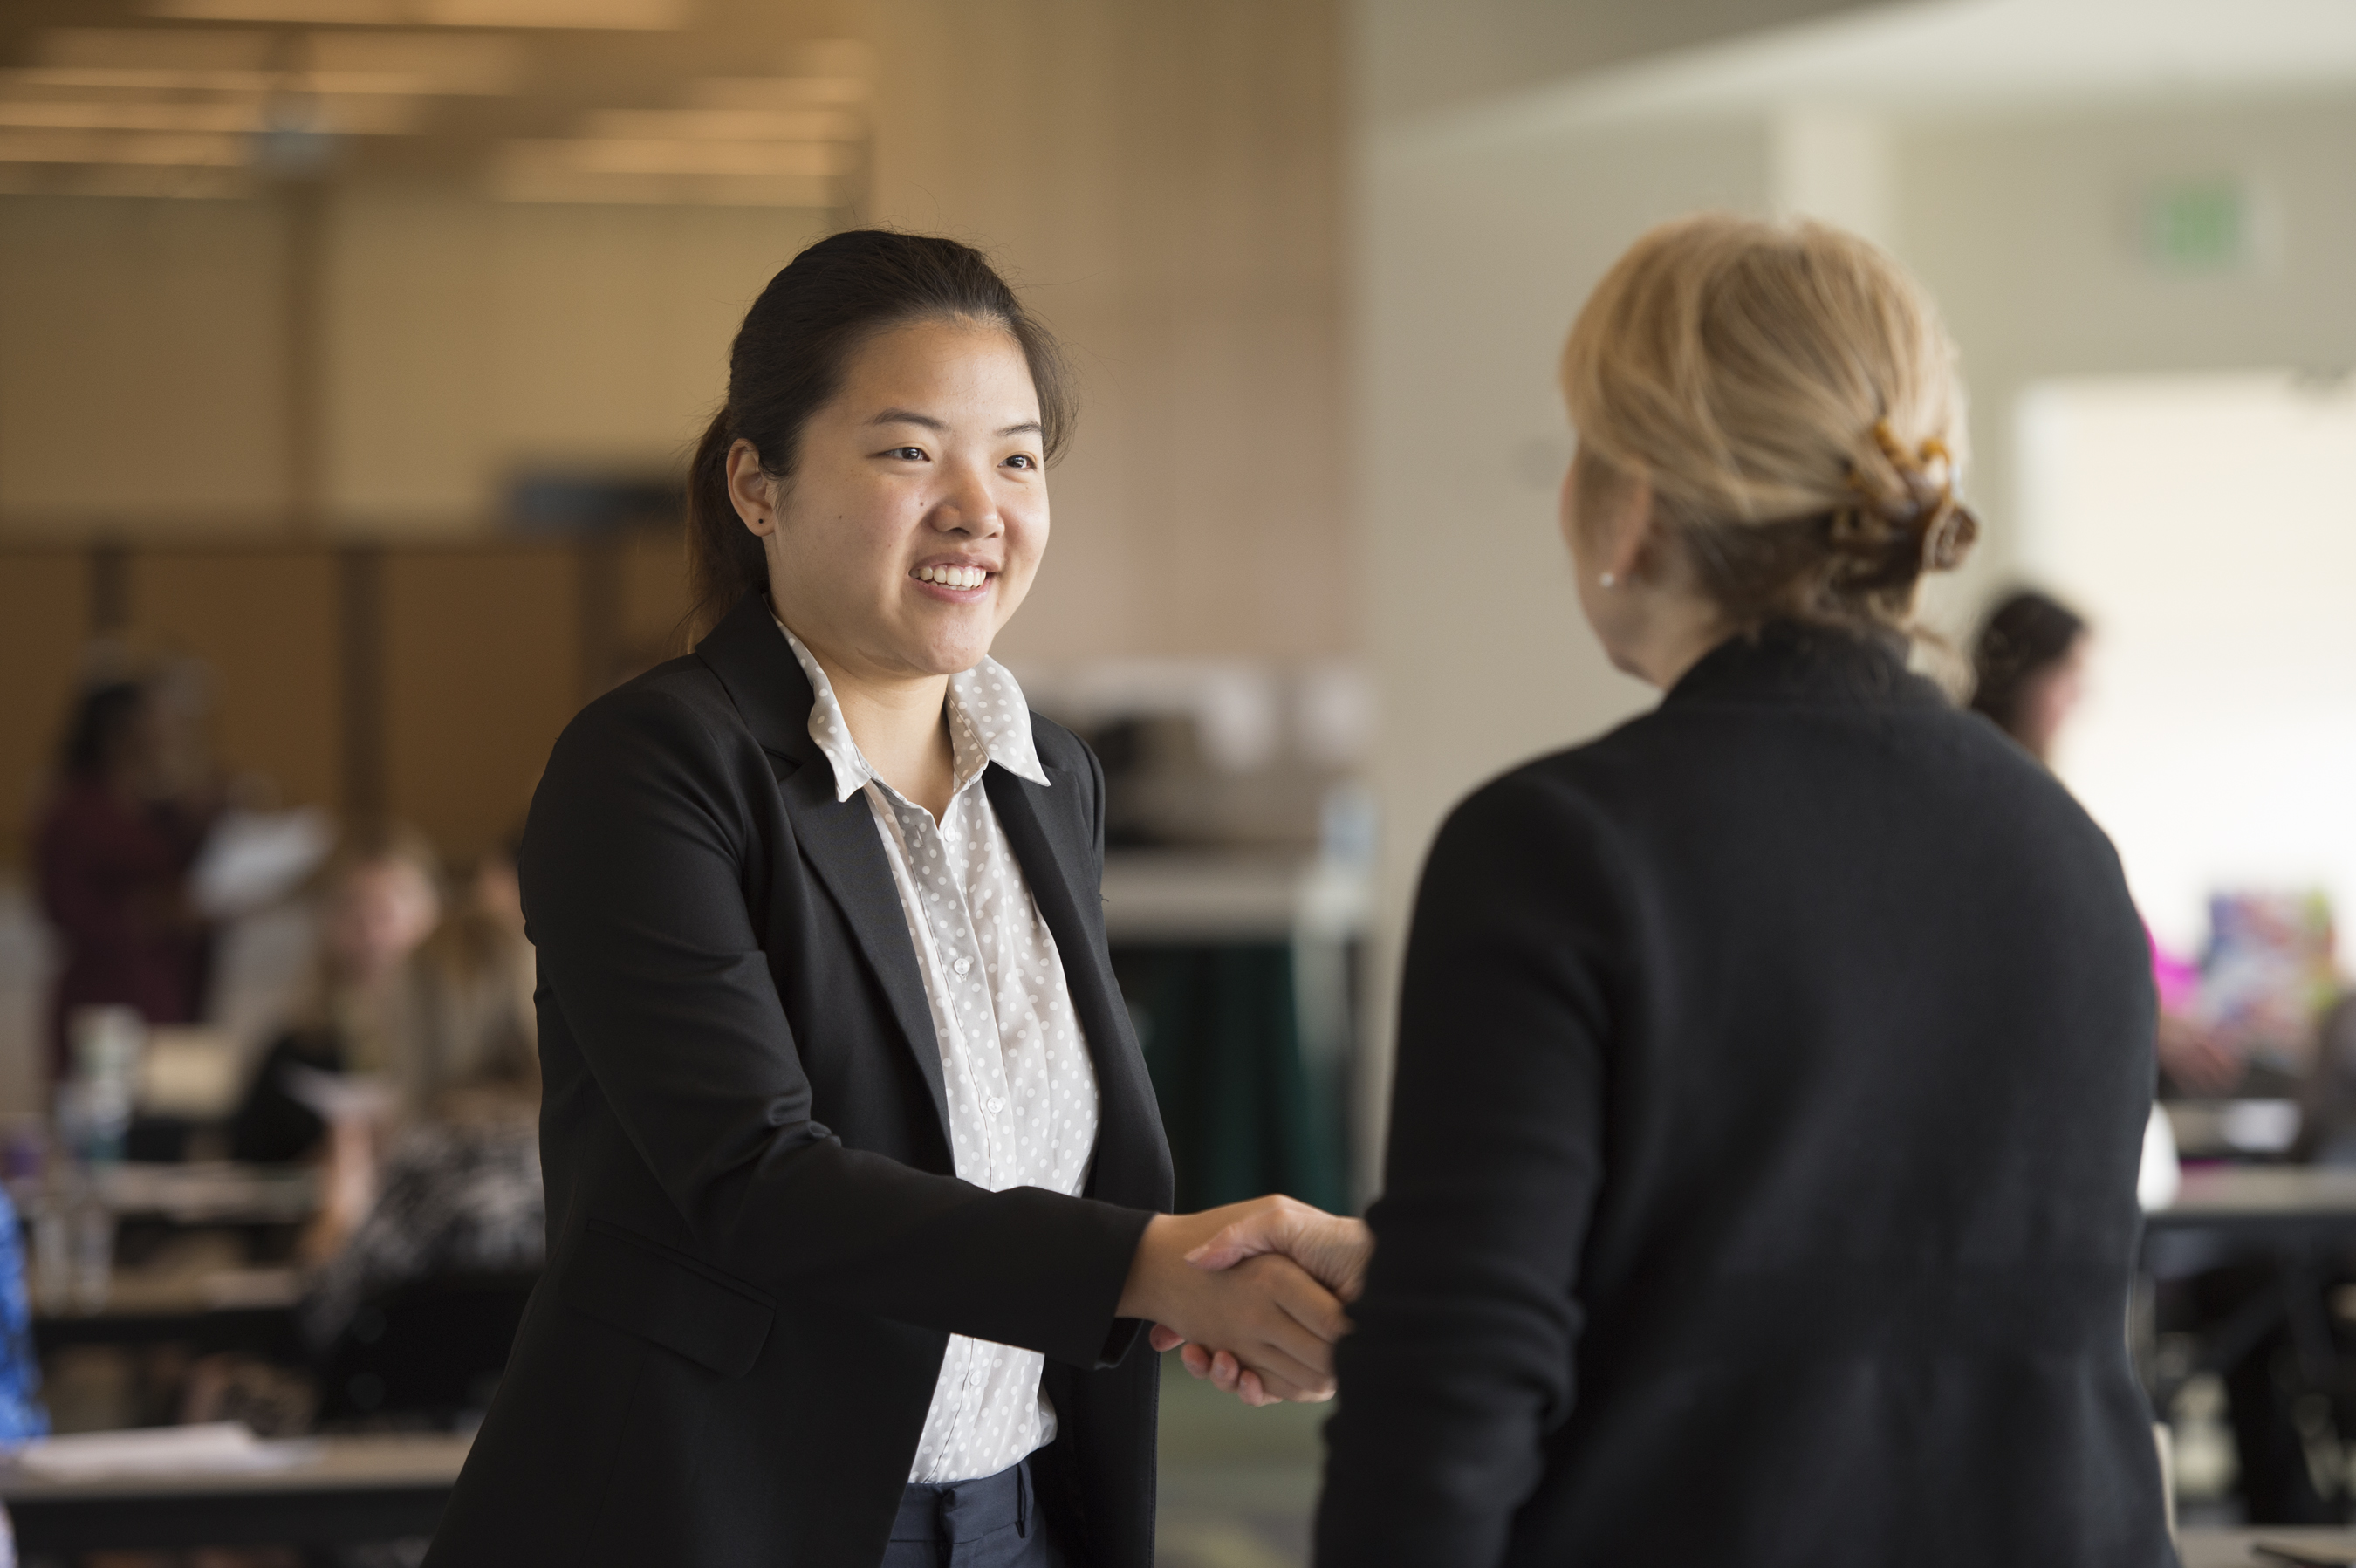 Student shaking hands with career coach.